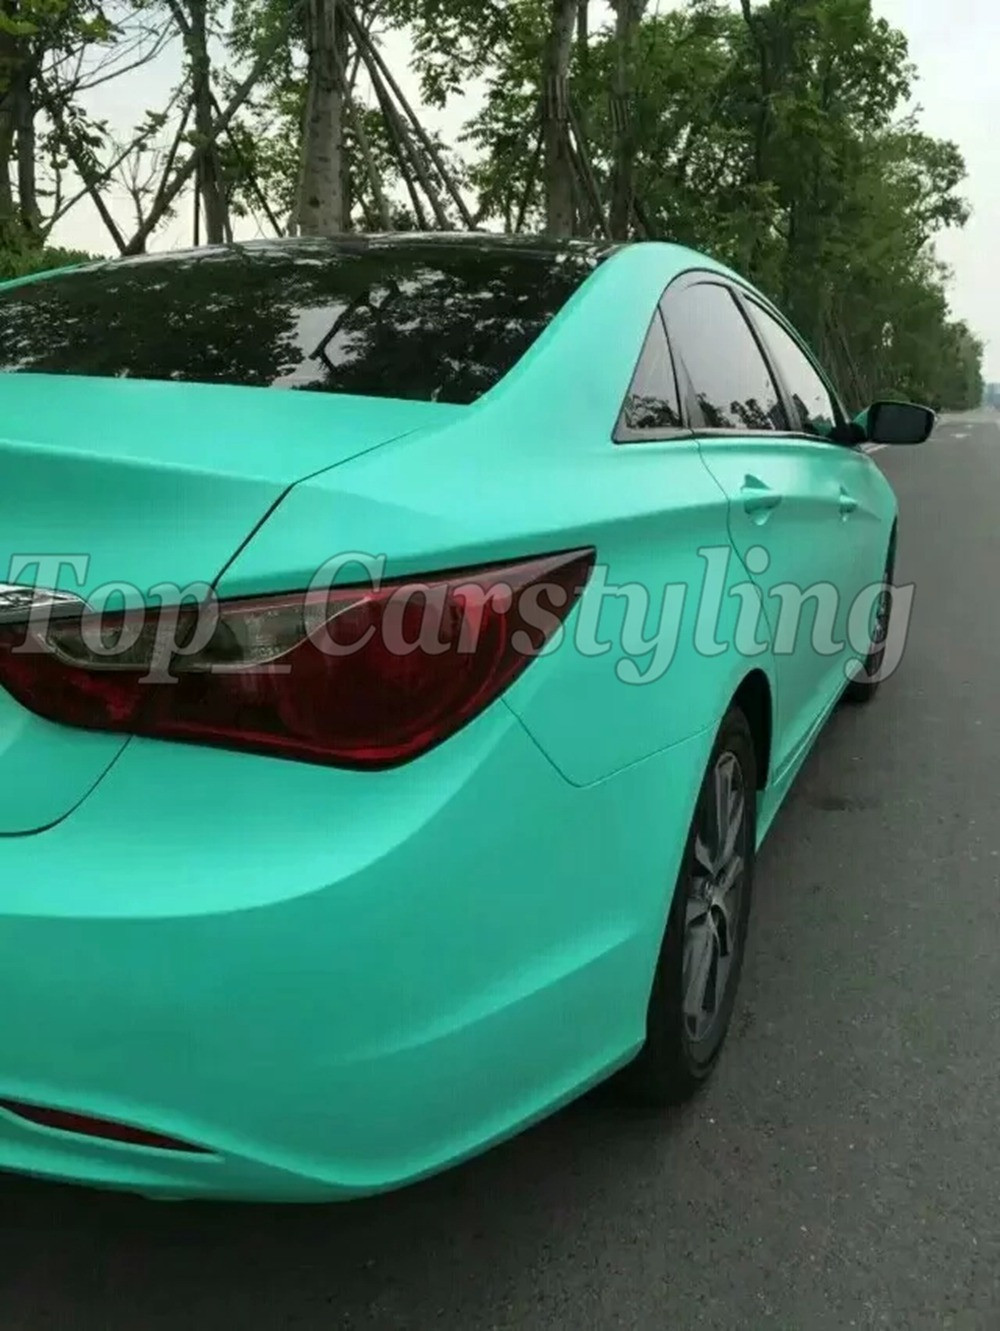 Matte tiffany blue mint green vinyl car wrapping film 3m satin white car wrap Film Foile (7)